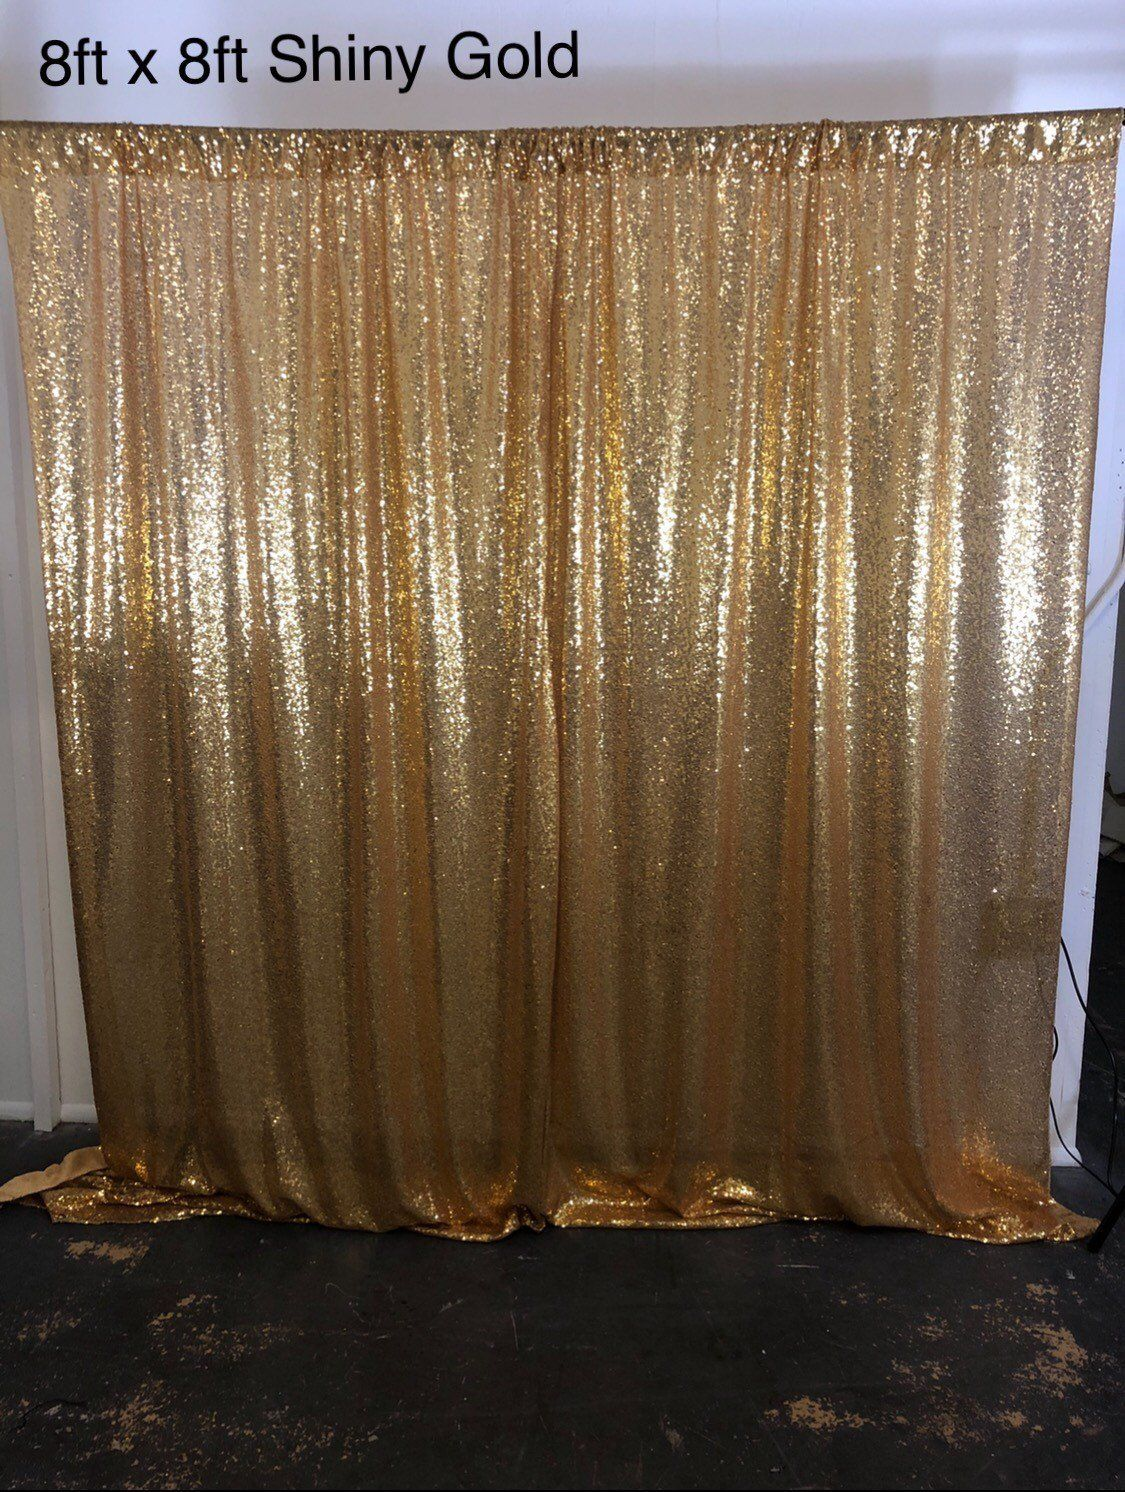 Gold Sequin Photo Backdrop Sequence Wedding Booth Photography Background Glitz Fabric Curtain Diff Colors By